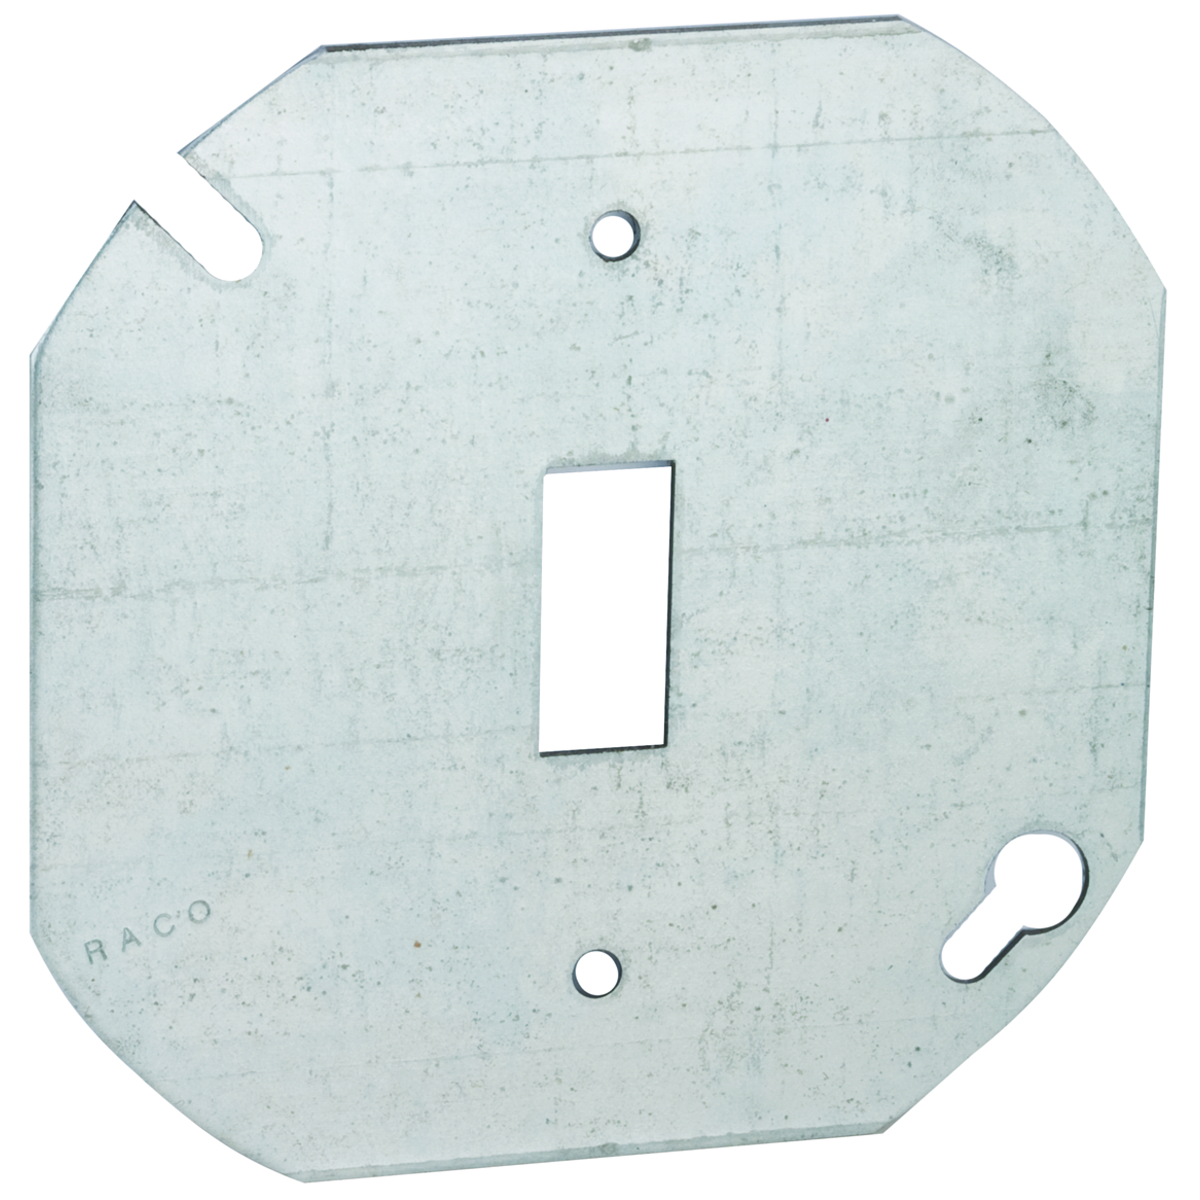 Hubbell-Raco 729 Box Cover